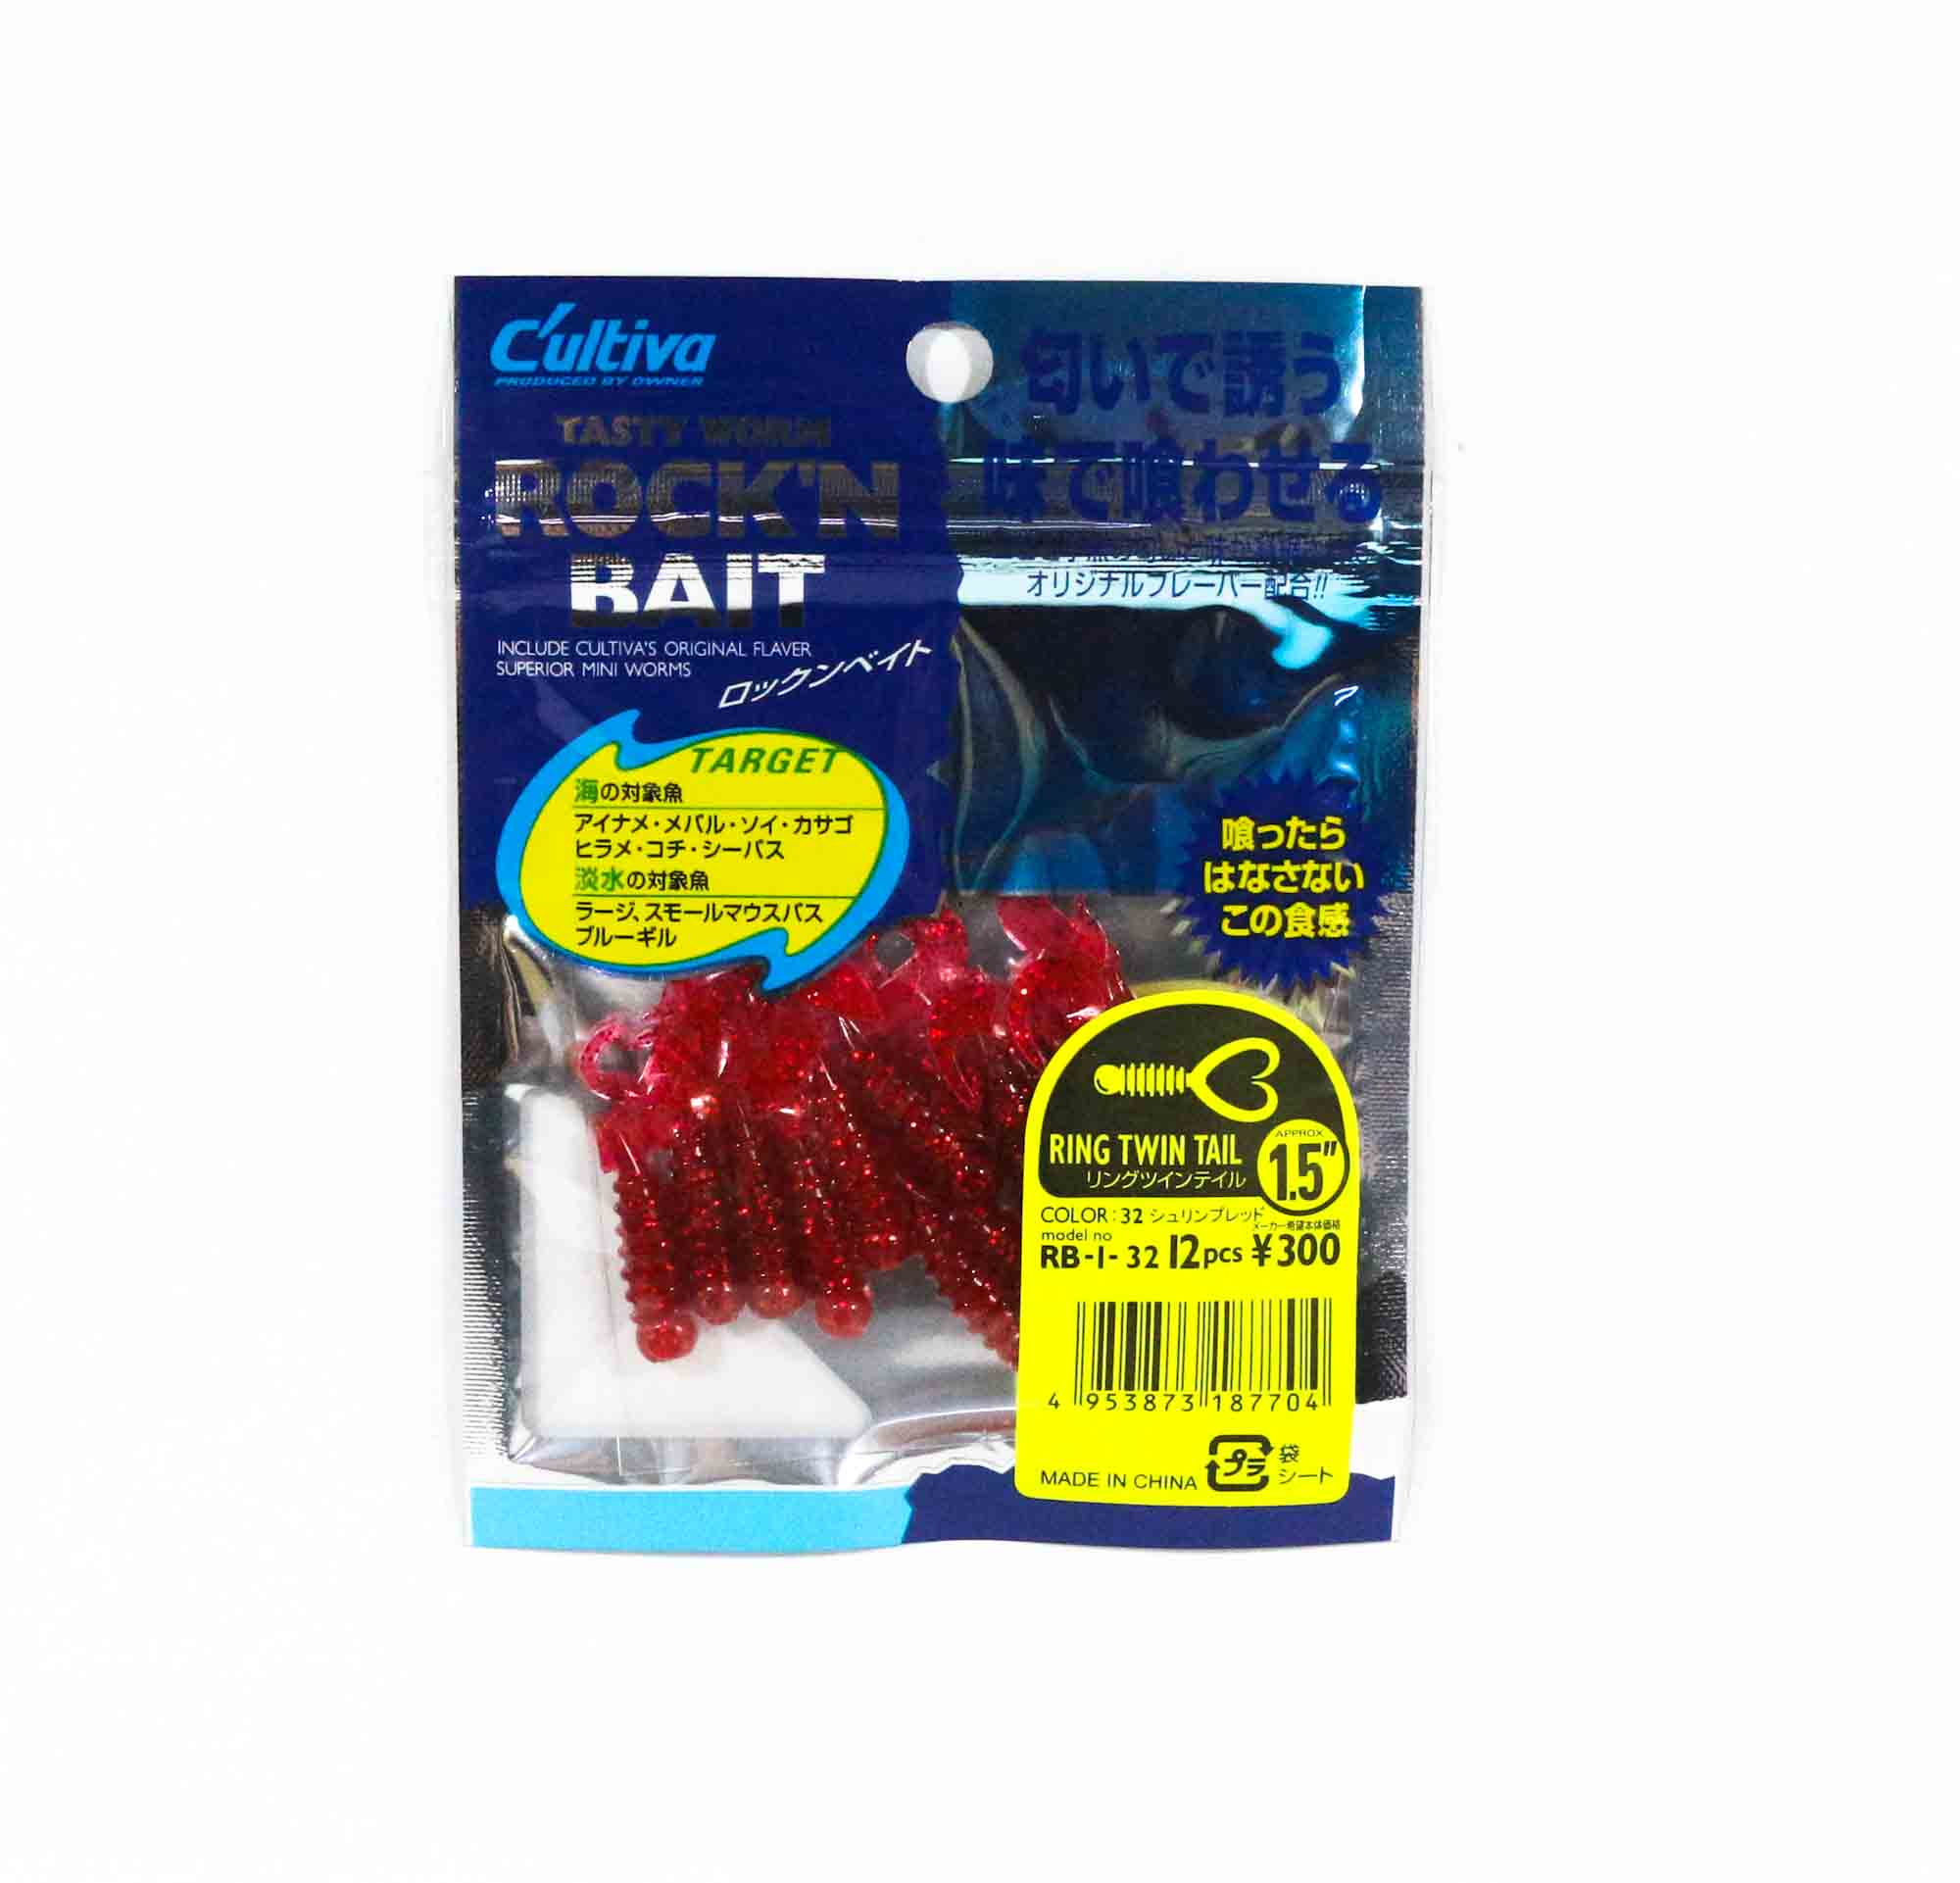 Owner Soft Lure RB-1 Ring Twin Tail 12 Pieces 1.5 Inches 32 (7704)